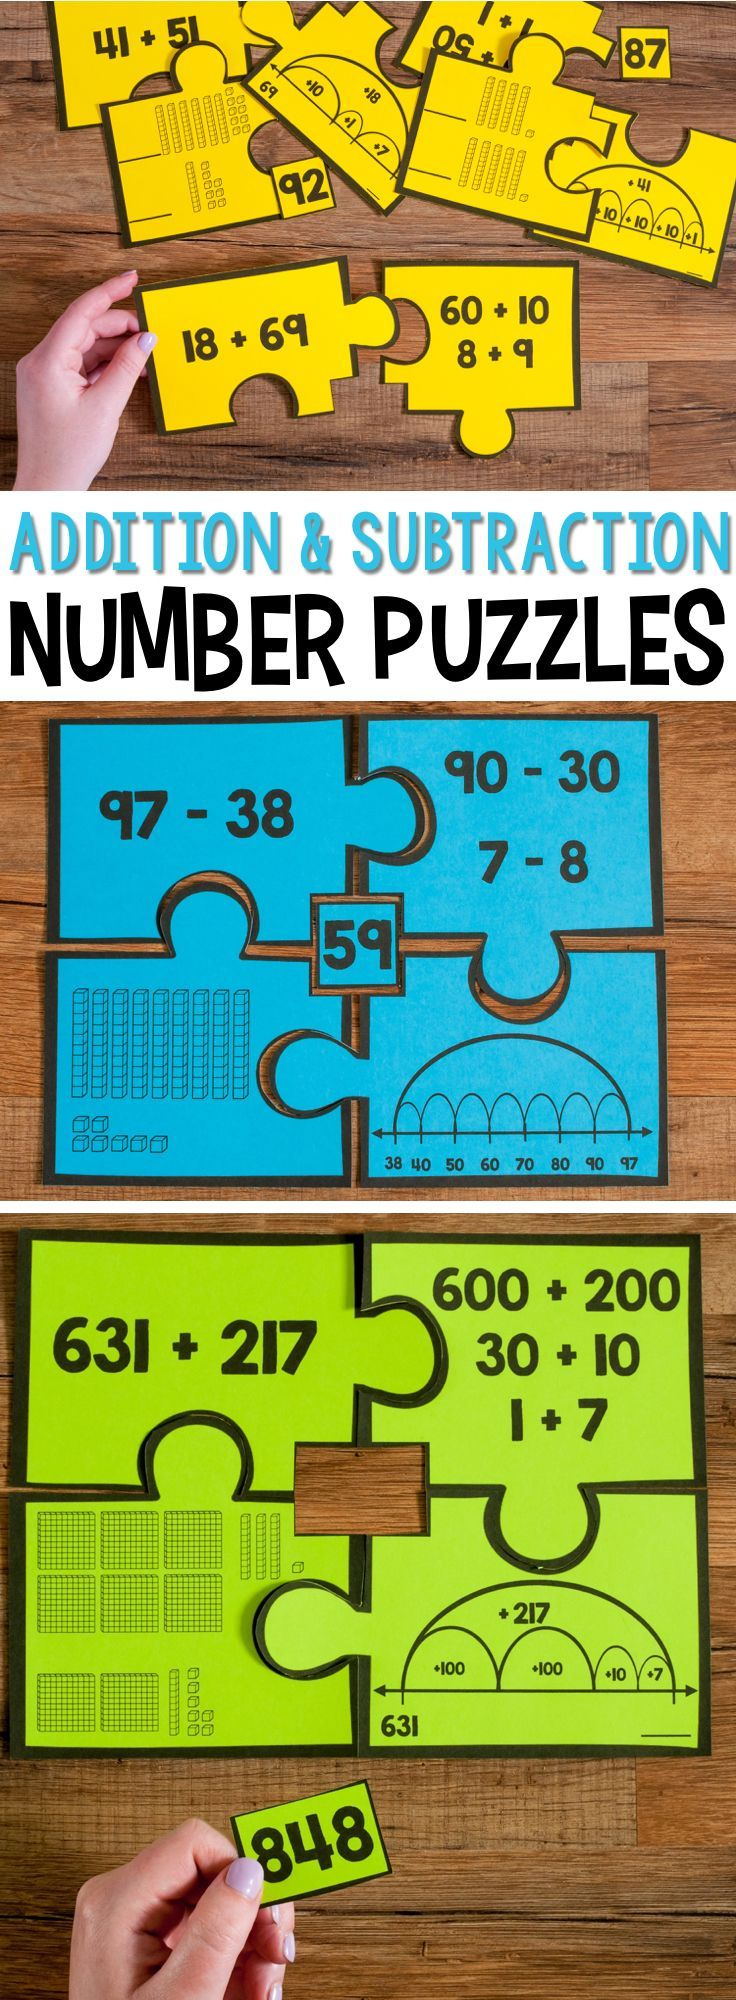 229 best Math images on Pinterest | Homeschool math, 4th grade math ...